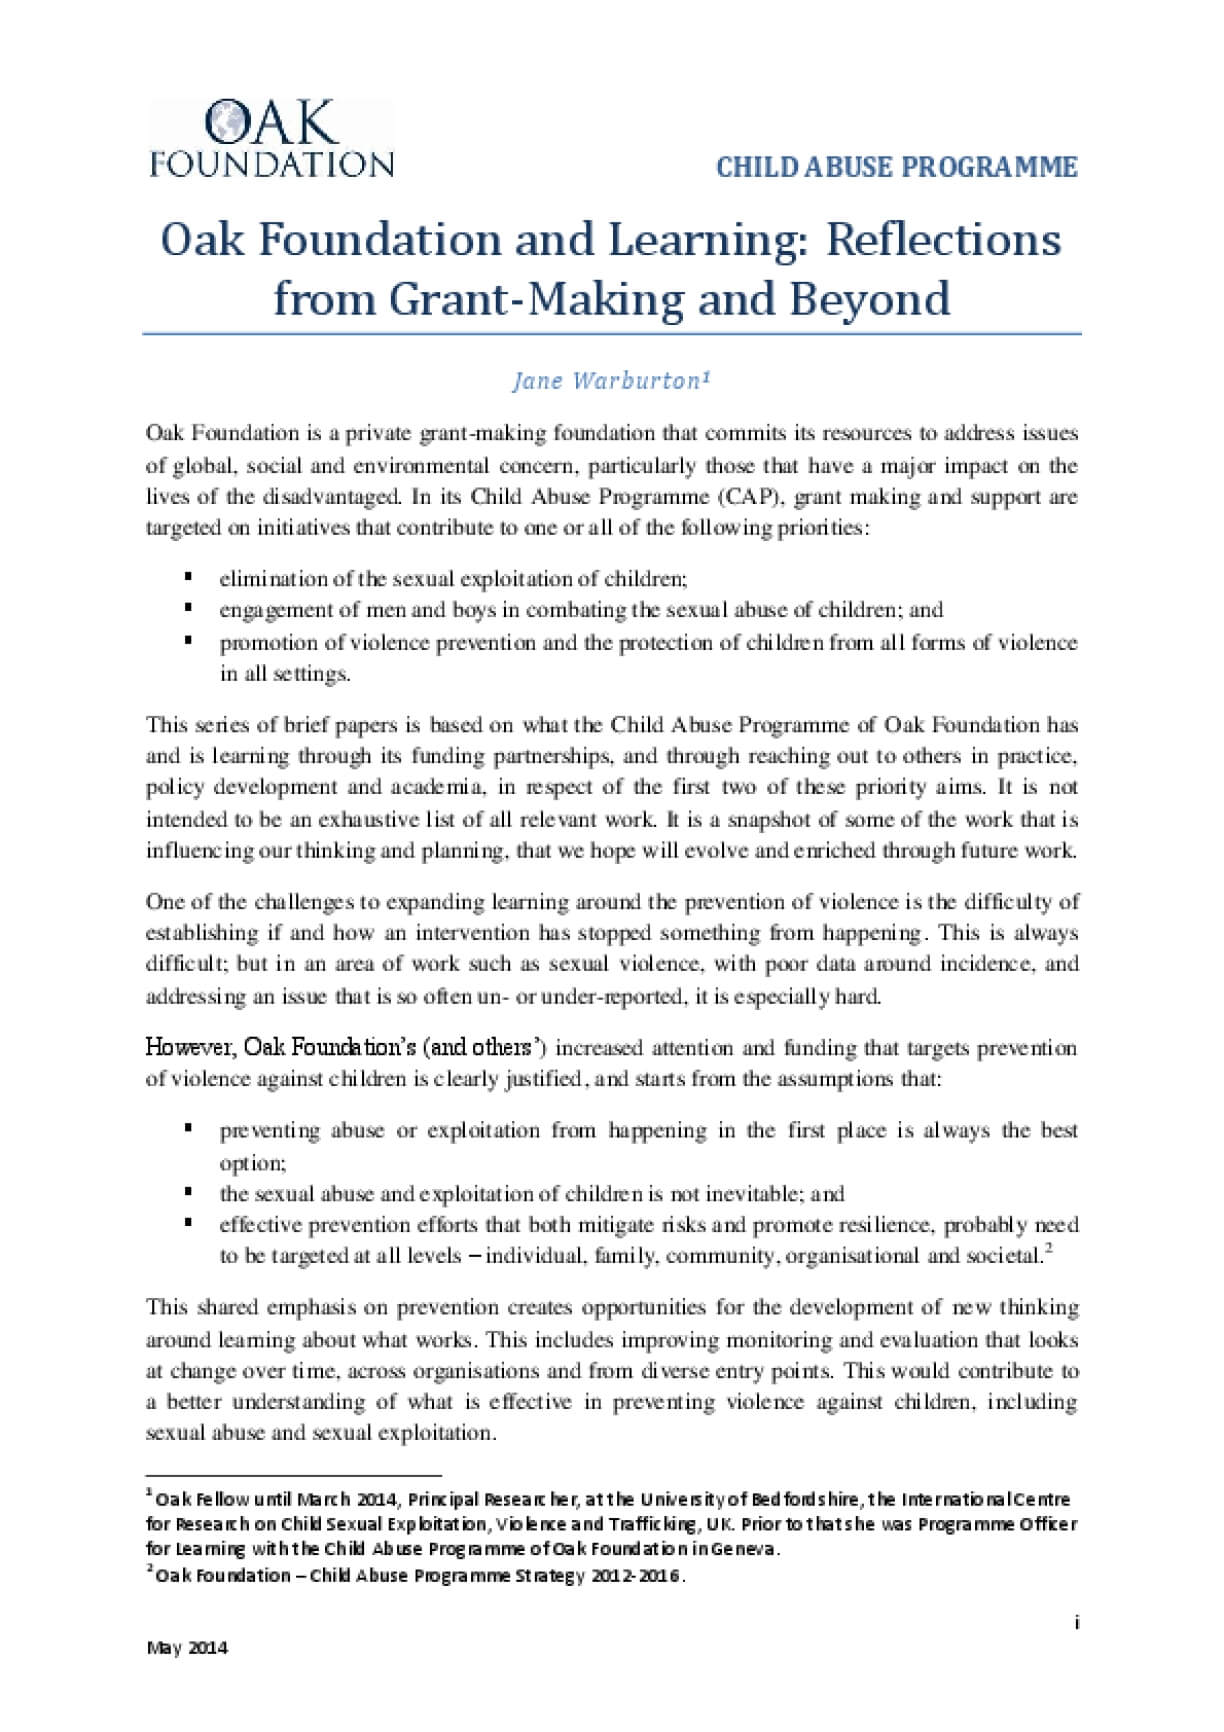 Child Abuse Programme, Oak Foundation and Learning: Reflections from Grant-Making and Beyond